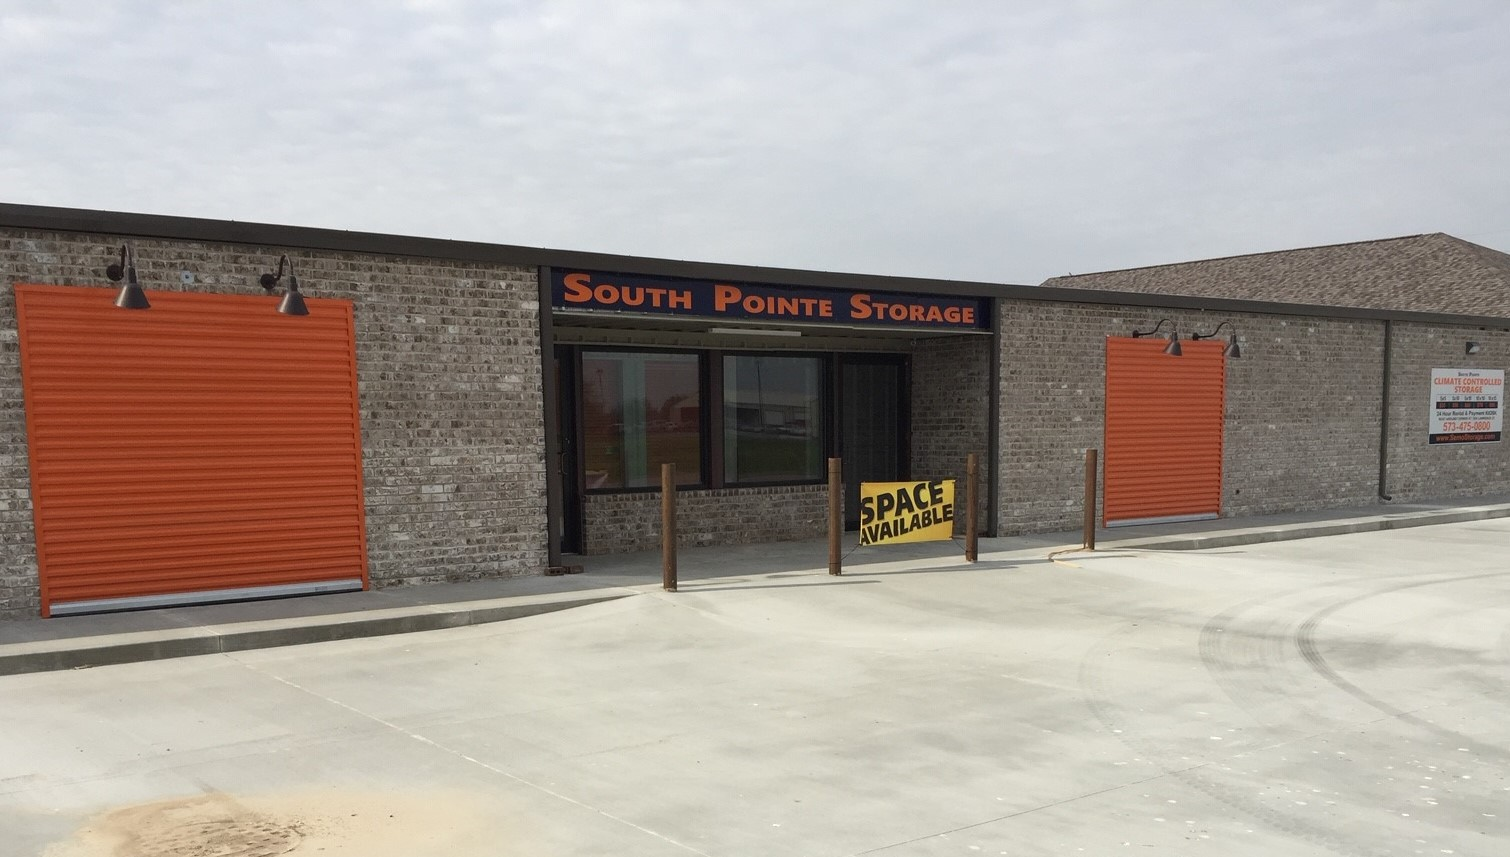 South Pointe Storage, MO